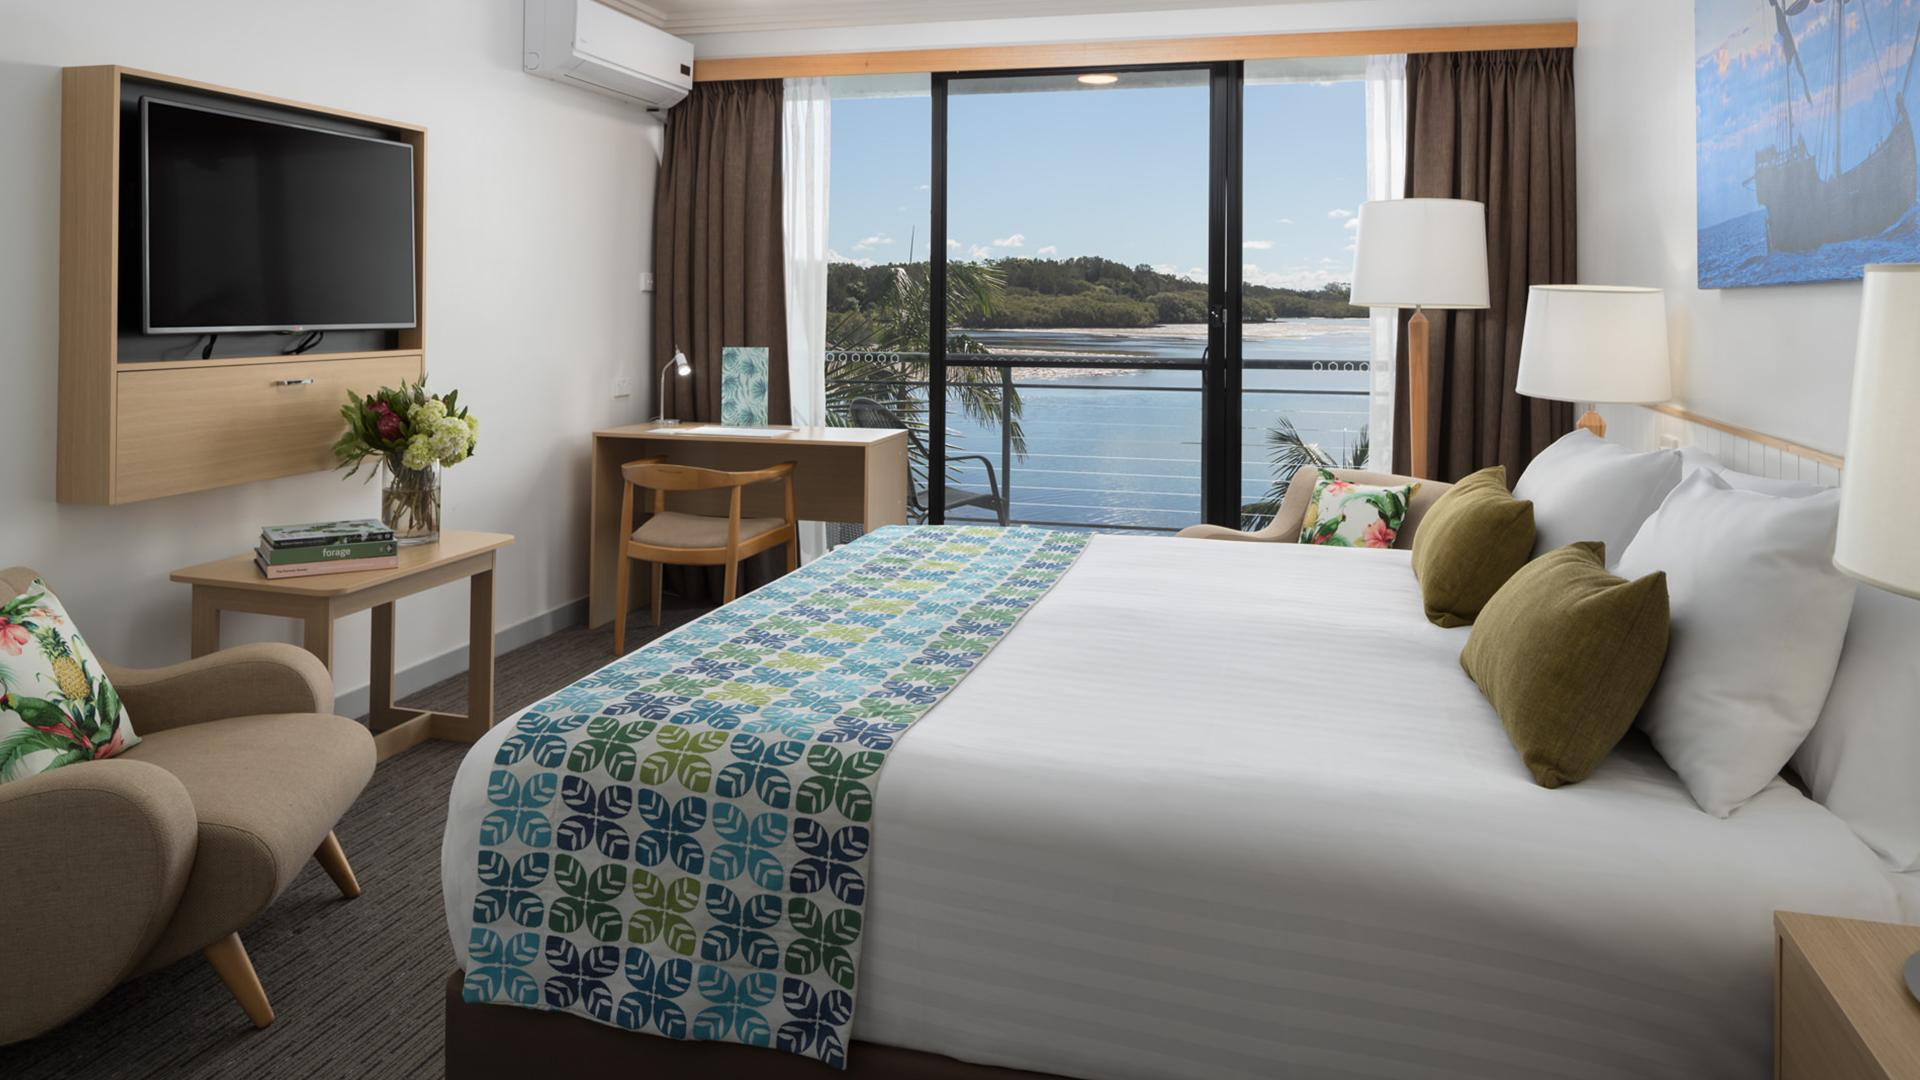 Water-View King Room image 1 at Sails Port Macquarie by Rydges by Port Macquarie-Hastings Council, New South Wales, Australia